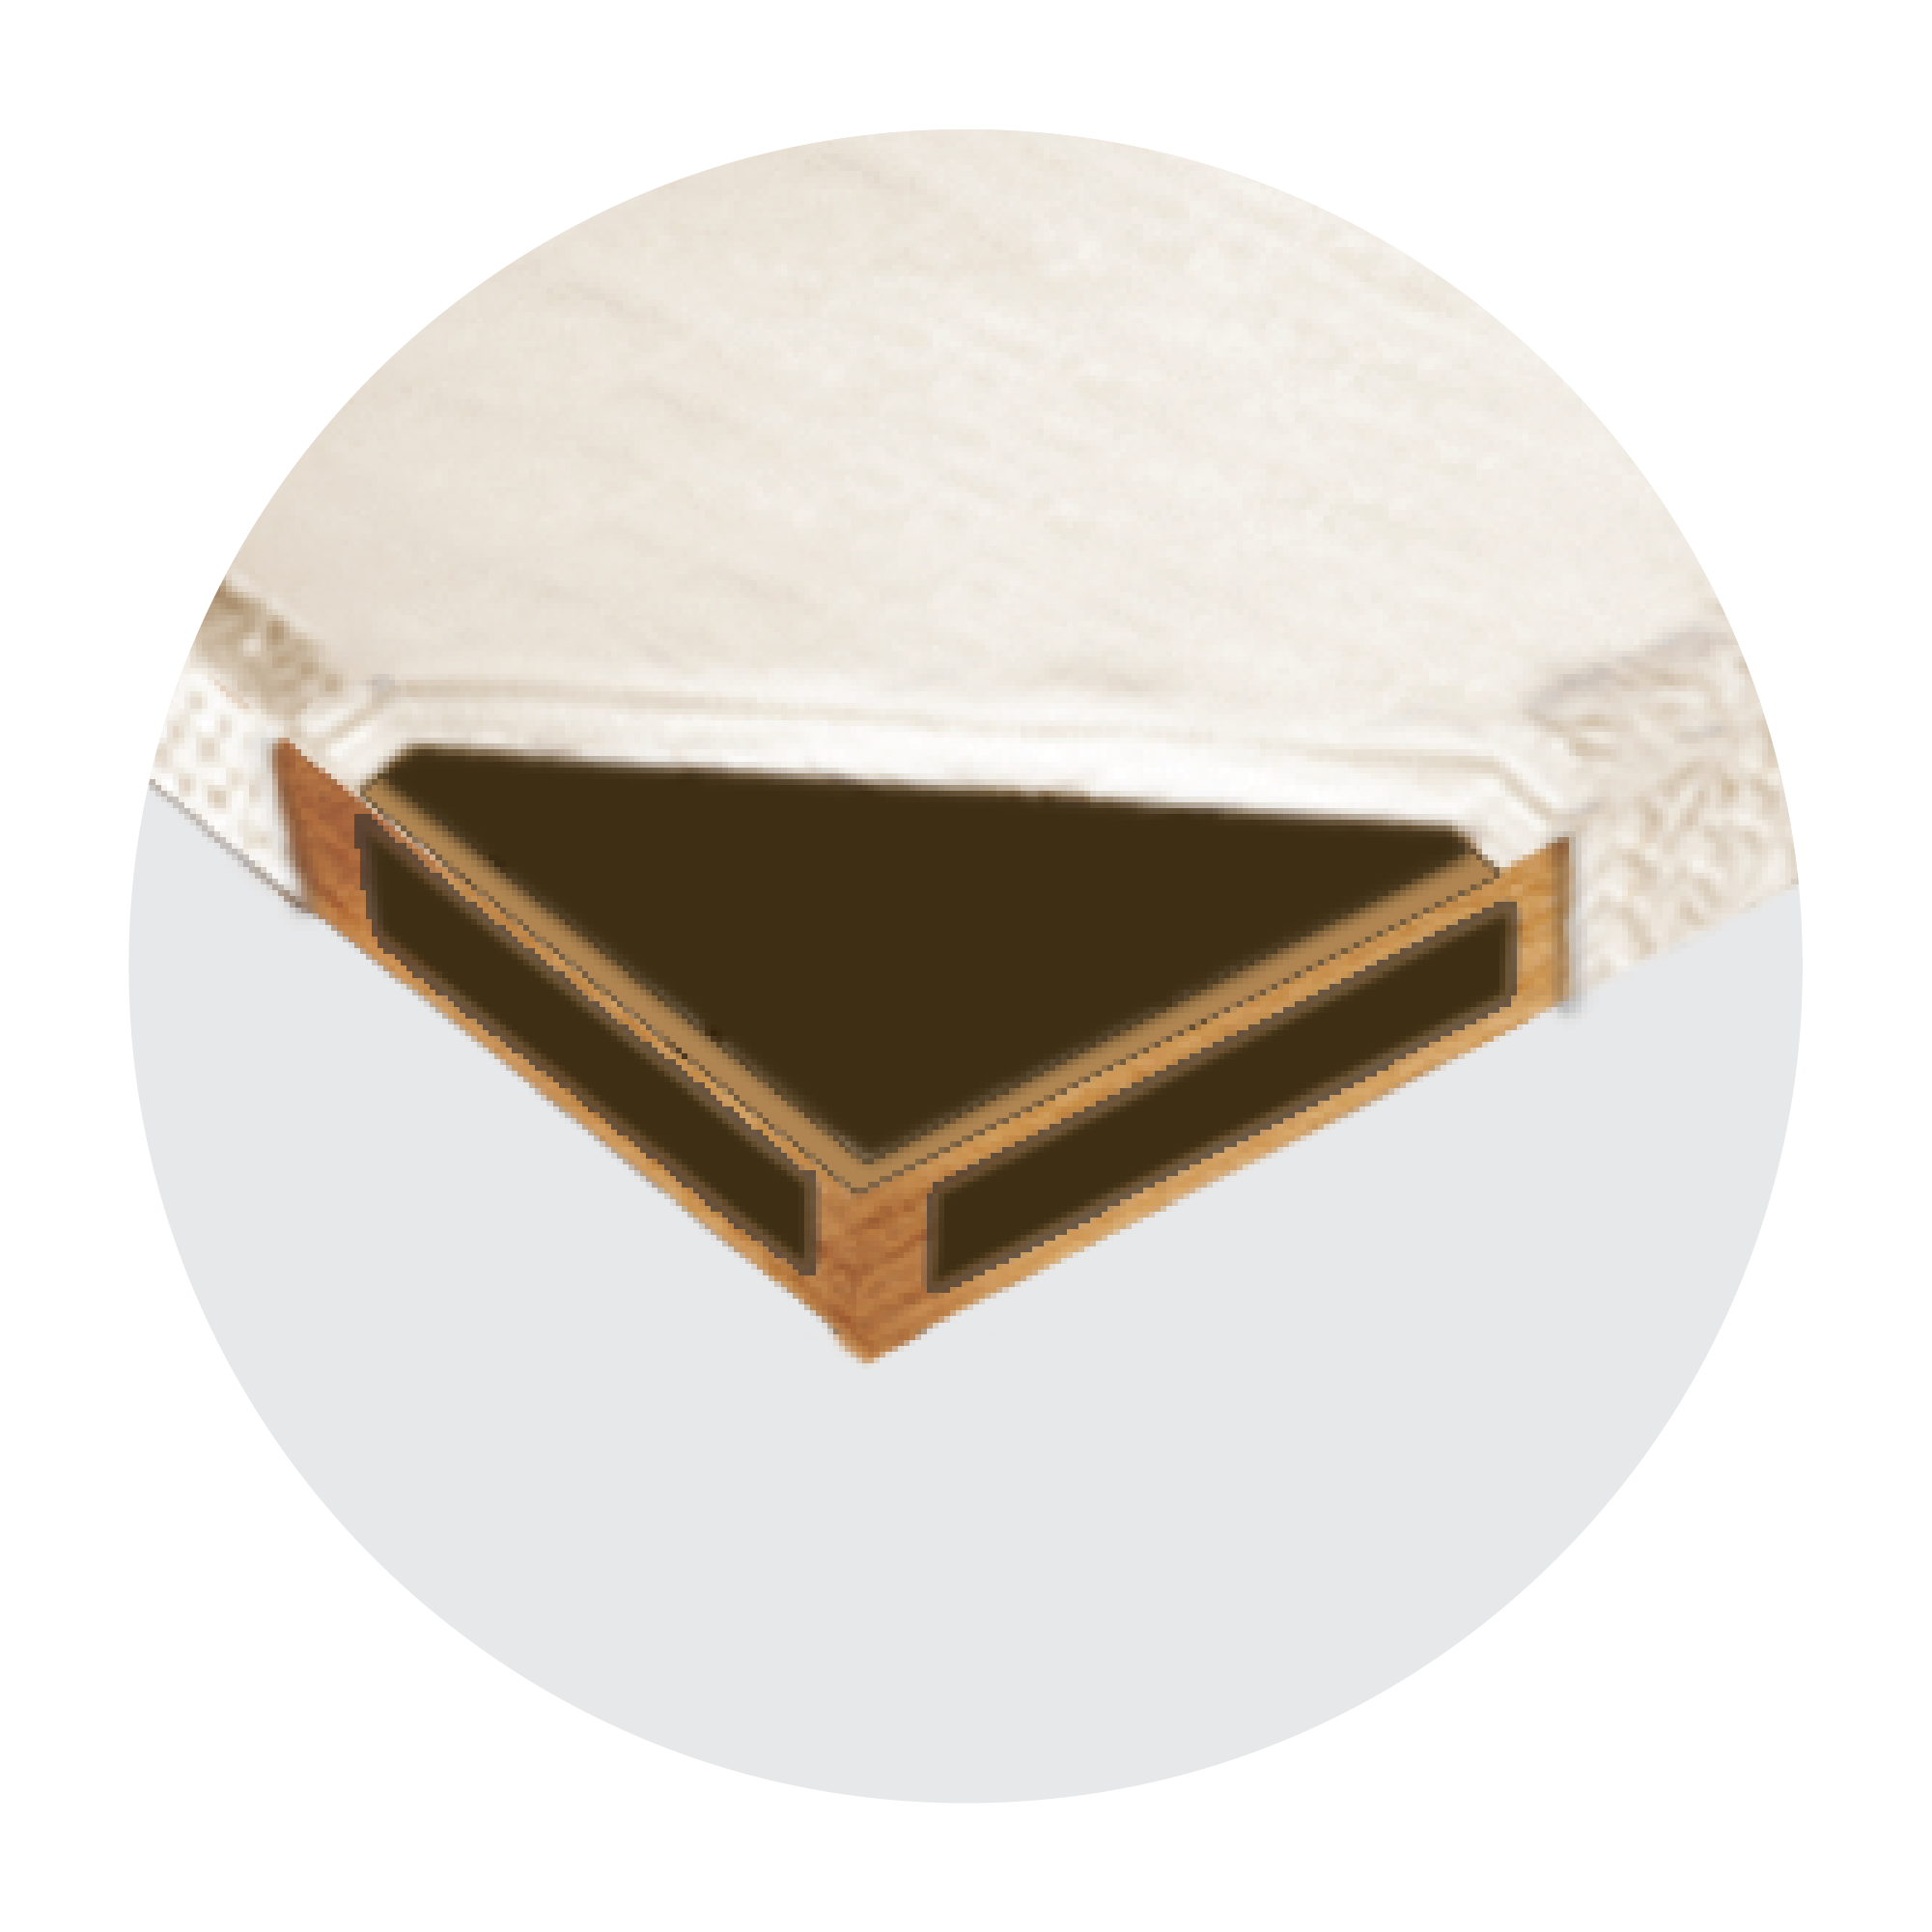 A firm support system which provides a steady and flat surface, holding your mattress firmly for even more stable and sturdy support.